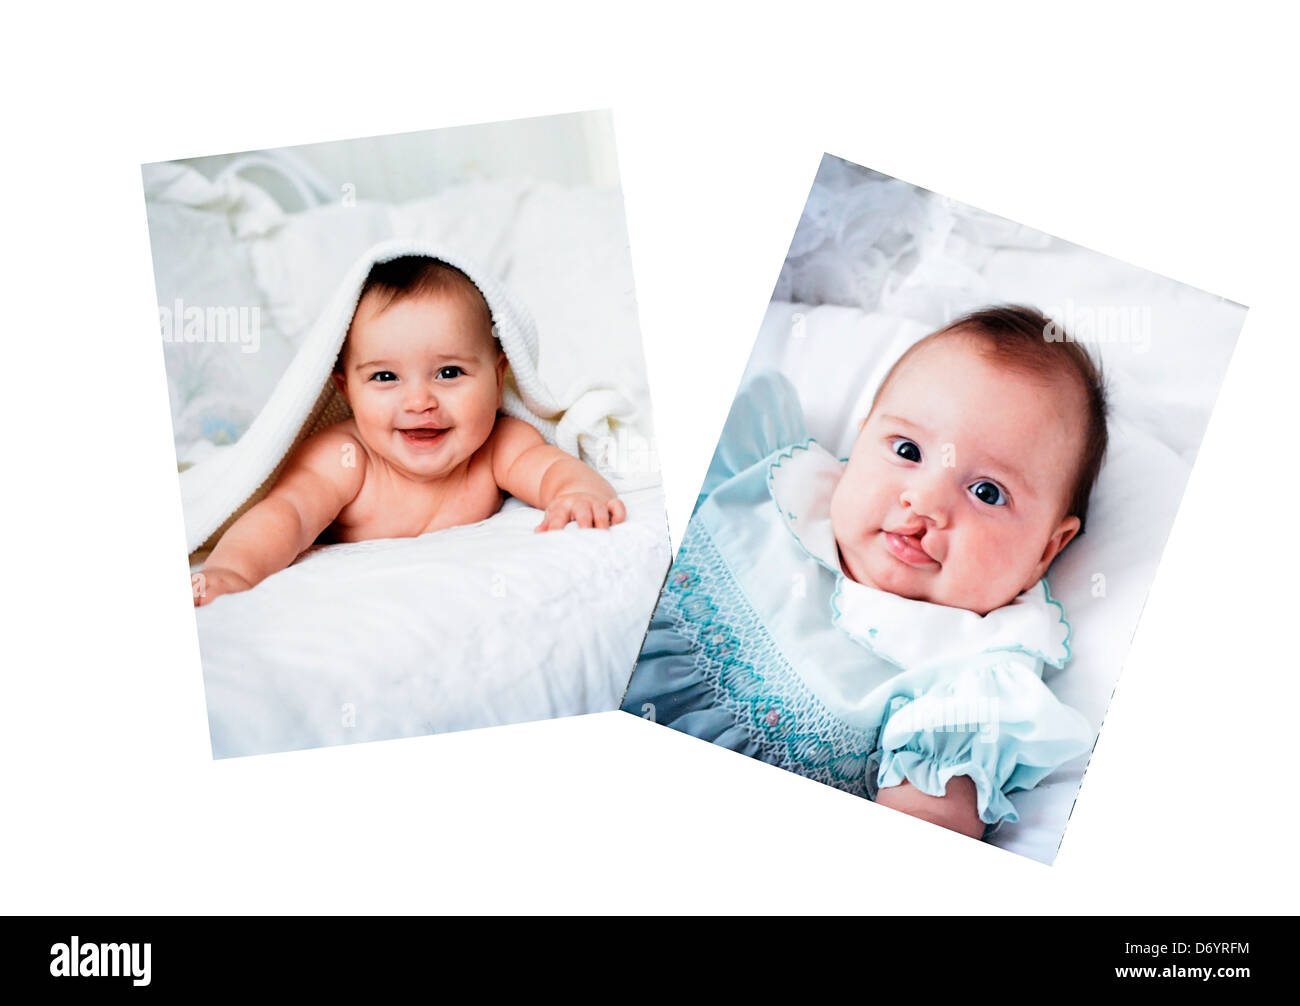 Pictures in a photo album of a baby who had surgery for a cleft lip. - Stock Image